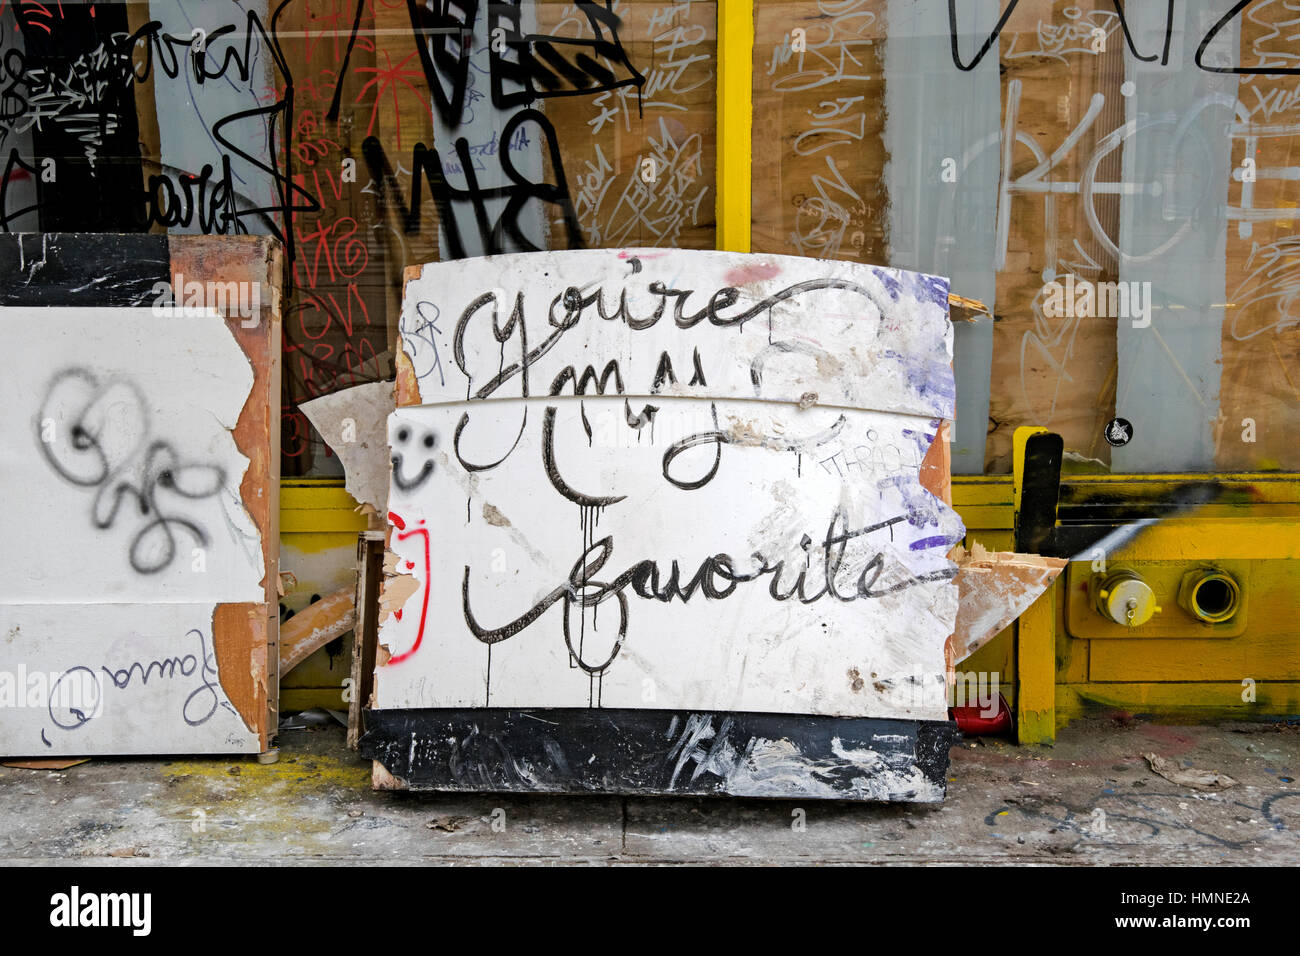 A pile of trash on Orchard Street on the Lower East Side street with a hand written message YOUR ARE MY FAVORITE. - Stock Image